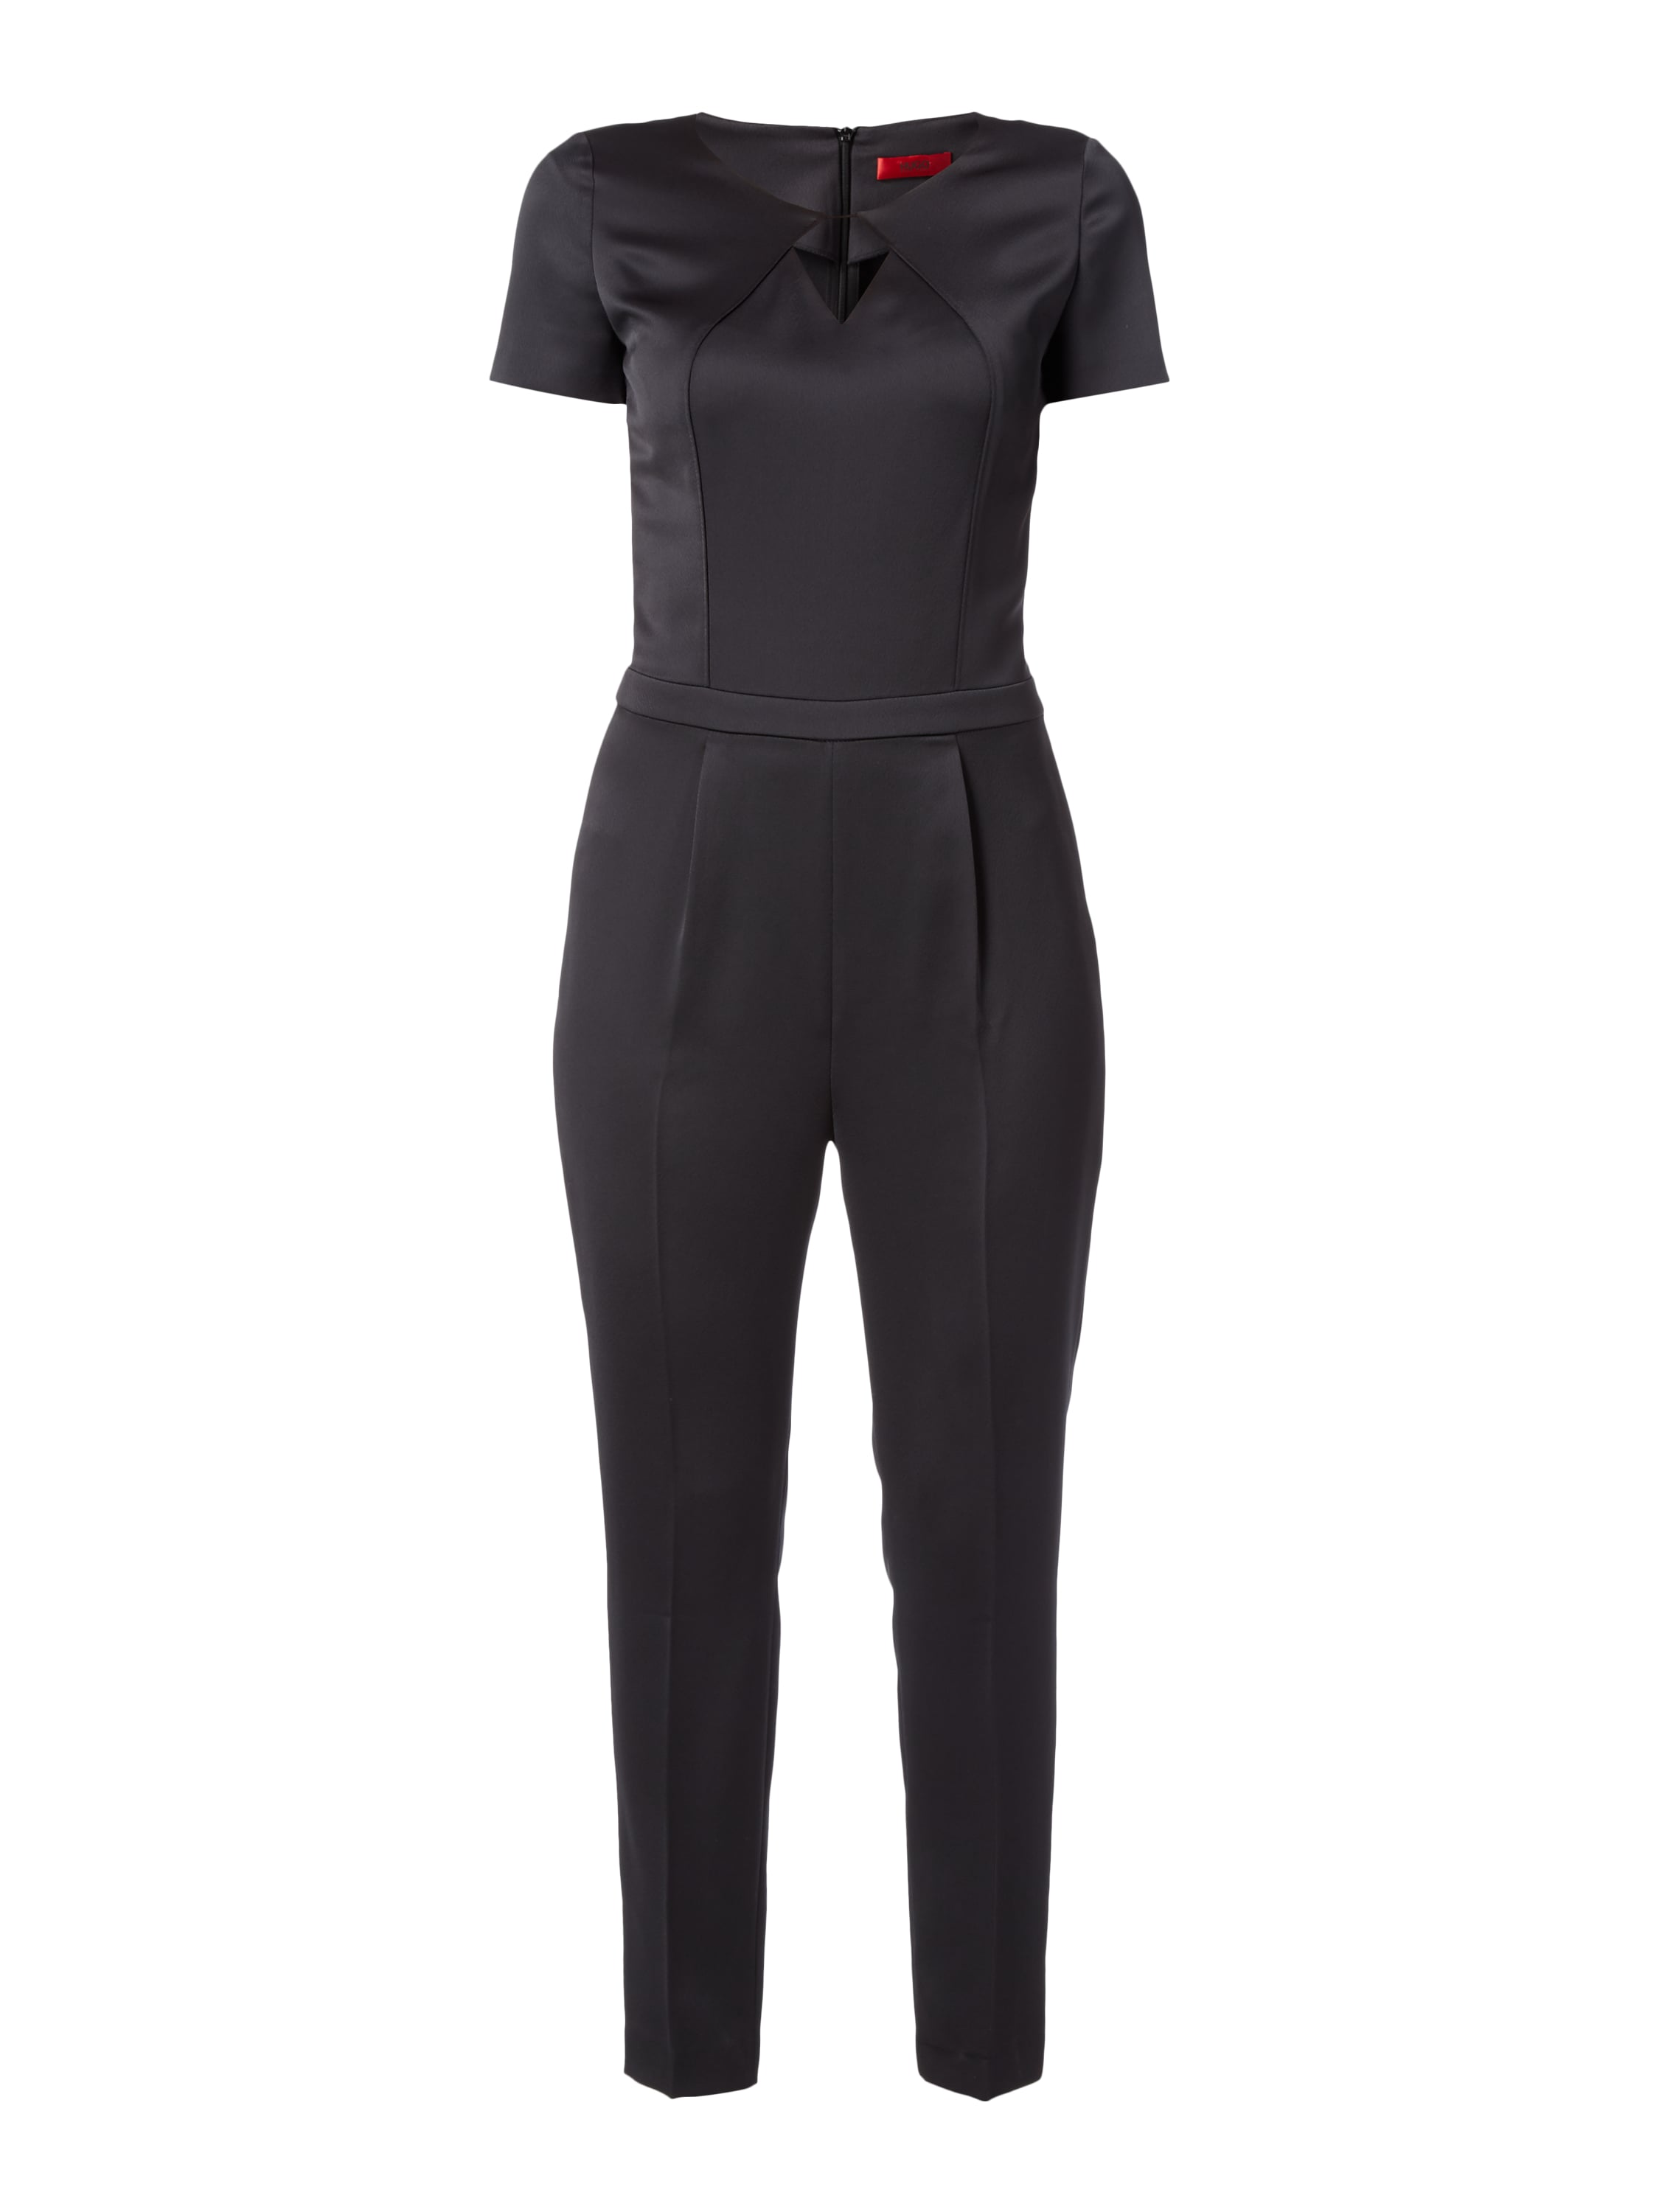 Jumpsuit Edel Jumpsuit Aus Satin Fashion Id Online Shop